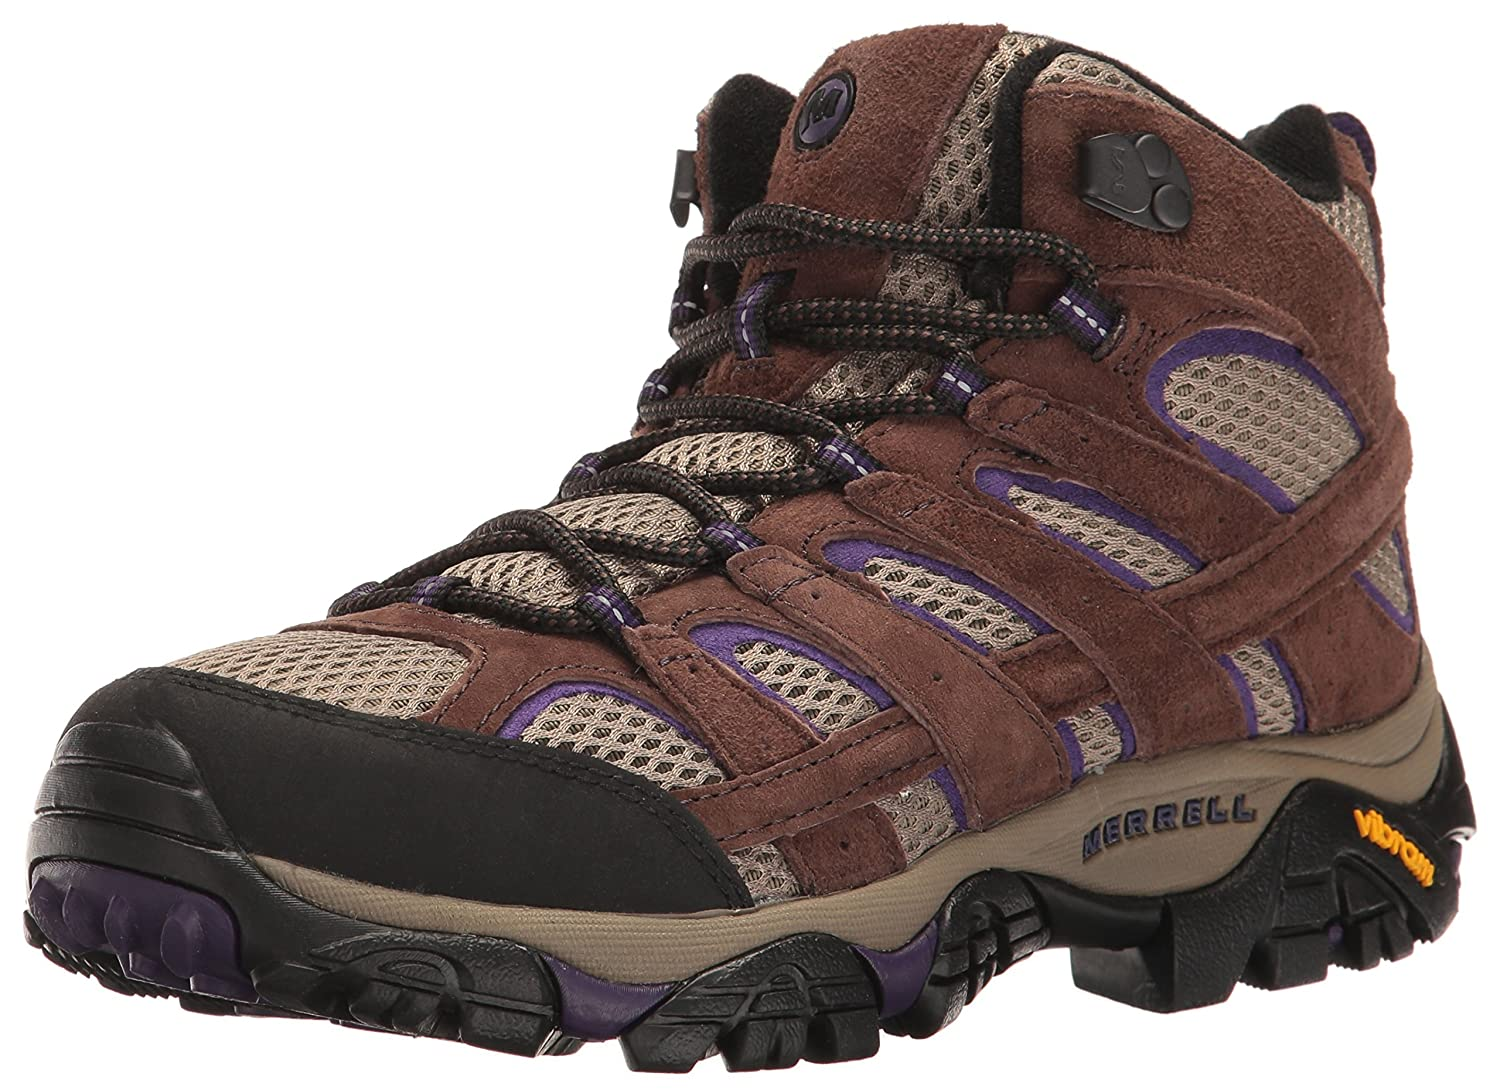 Merrell Women's Moab 2 Vent Mid Hiking Boot B01HFMZYW4 10 W US|Bracken/Purple